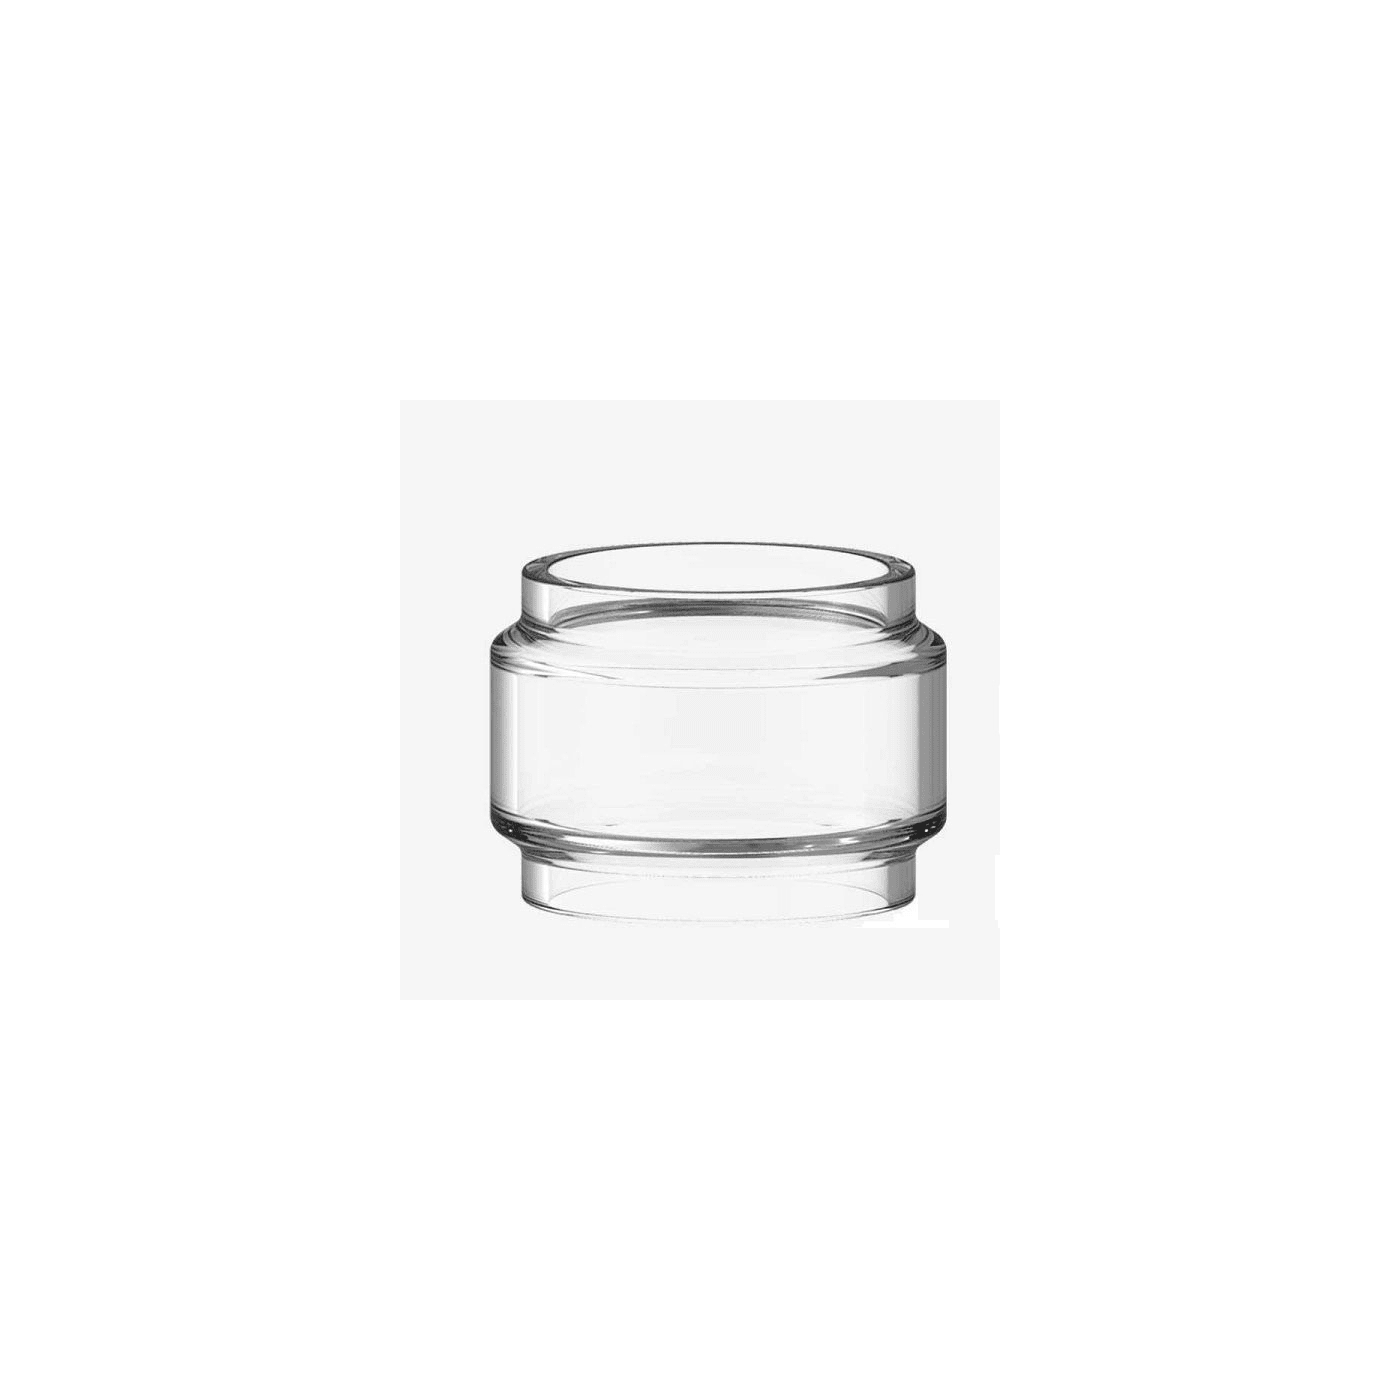 Vaporesso SKY SOLO PLUS Replacement Glass - 1 pack